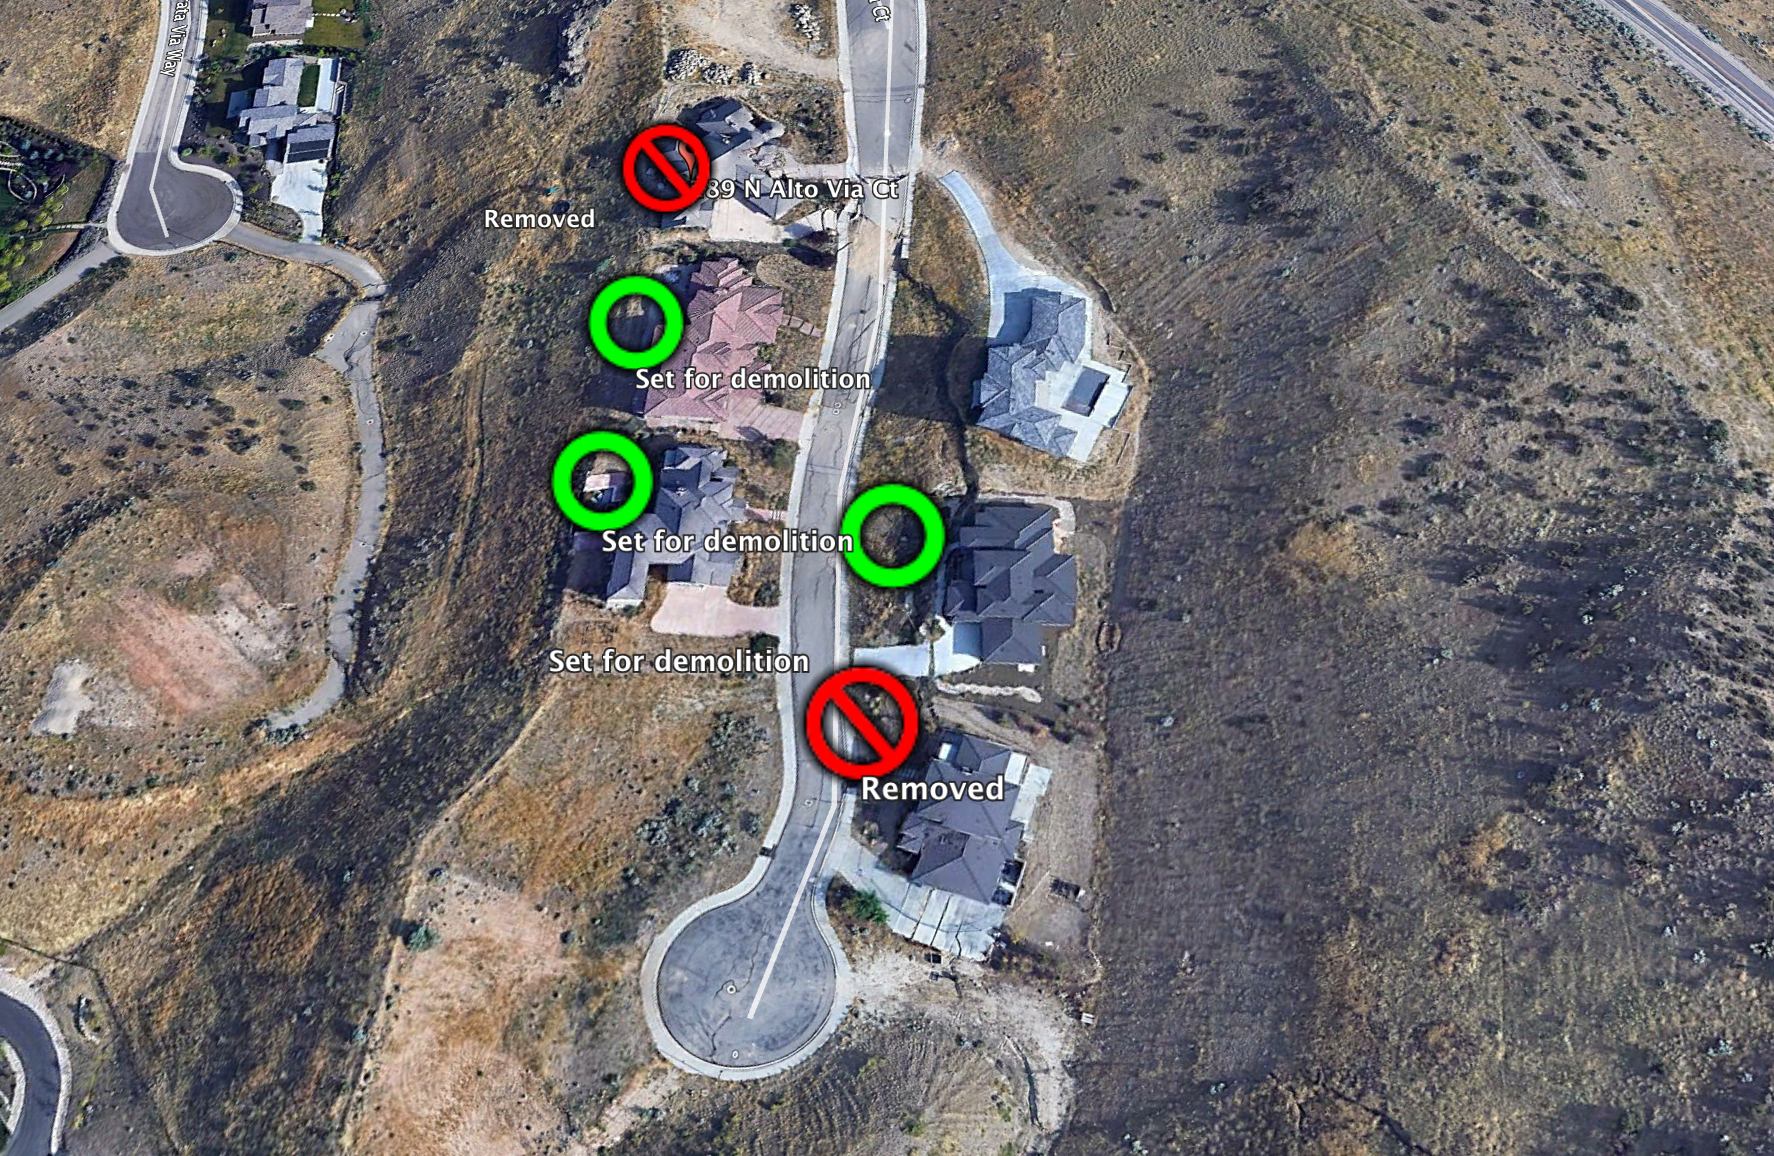 Homes already removed marked with a 🚫. Homes set to be torn down marked with a green circle.